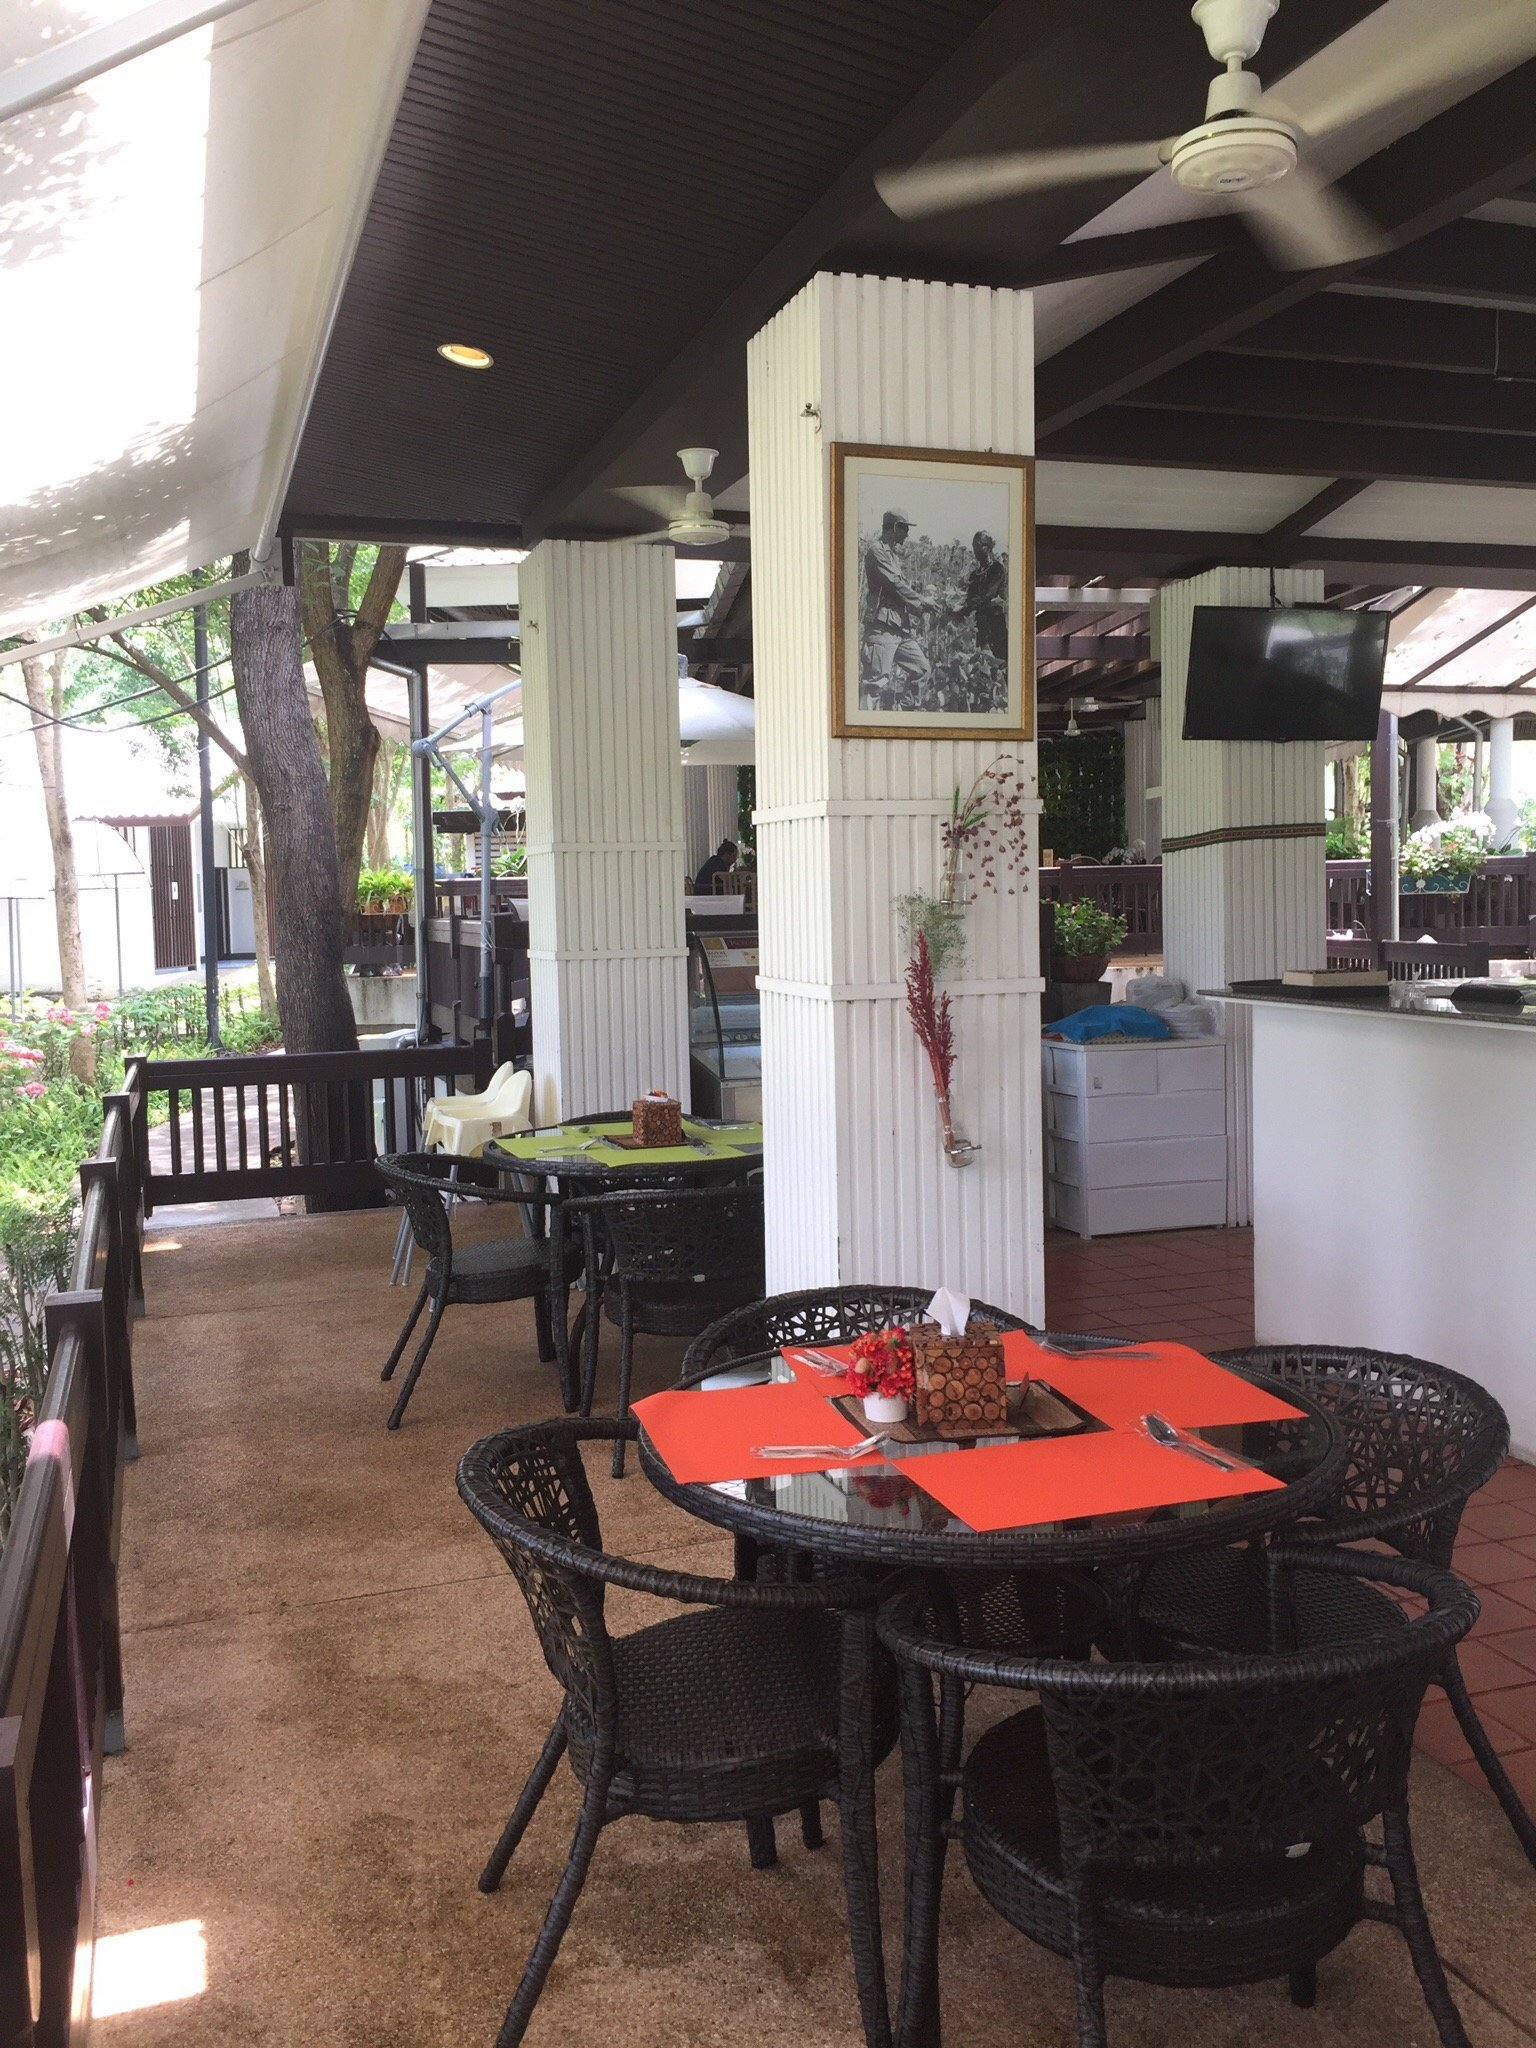 Royal project kitchen chiang mai restaurant reviews for J kitchen chiang mai